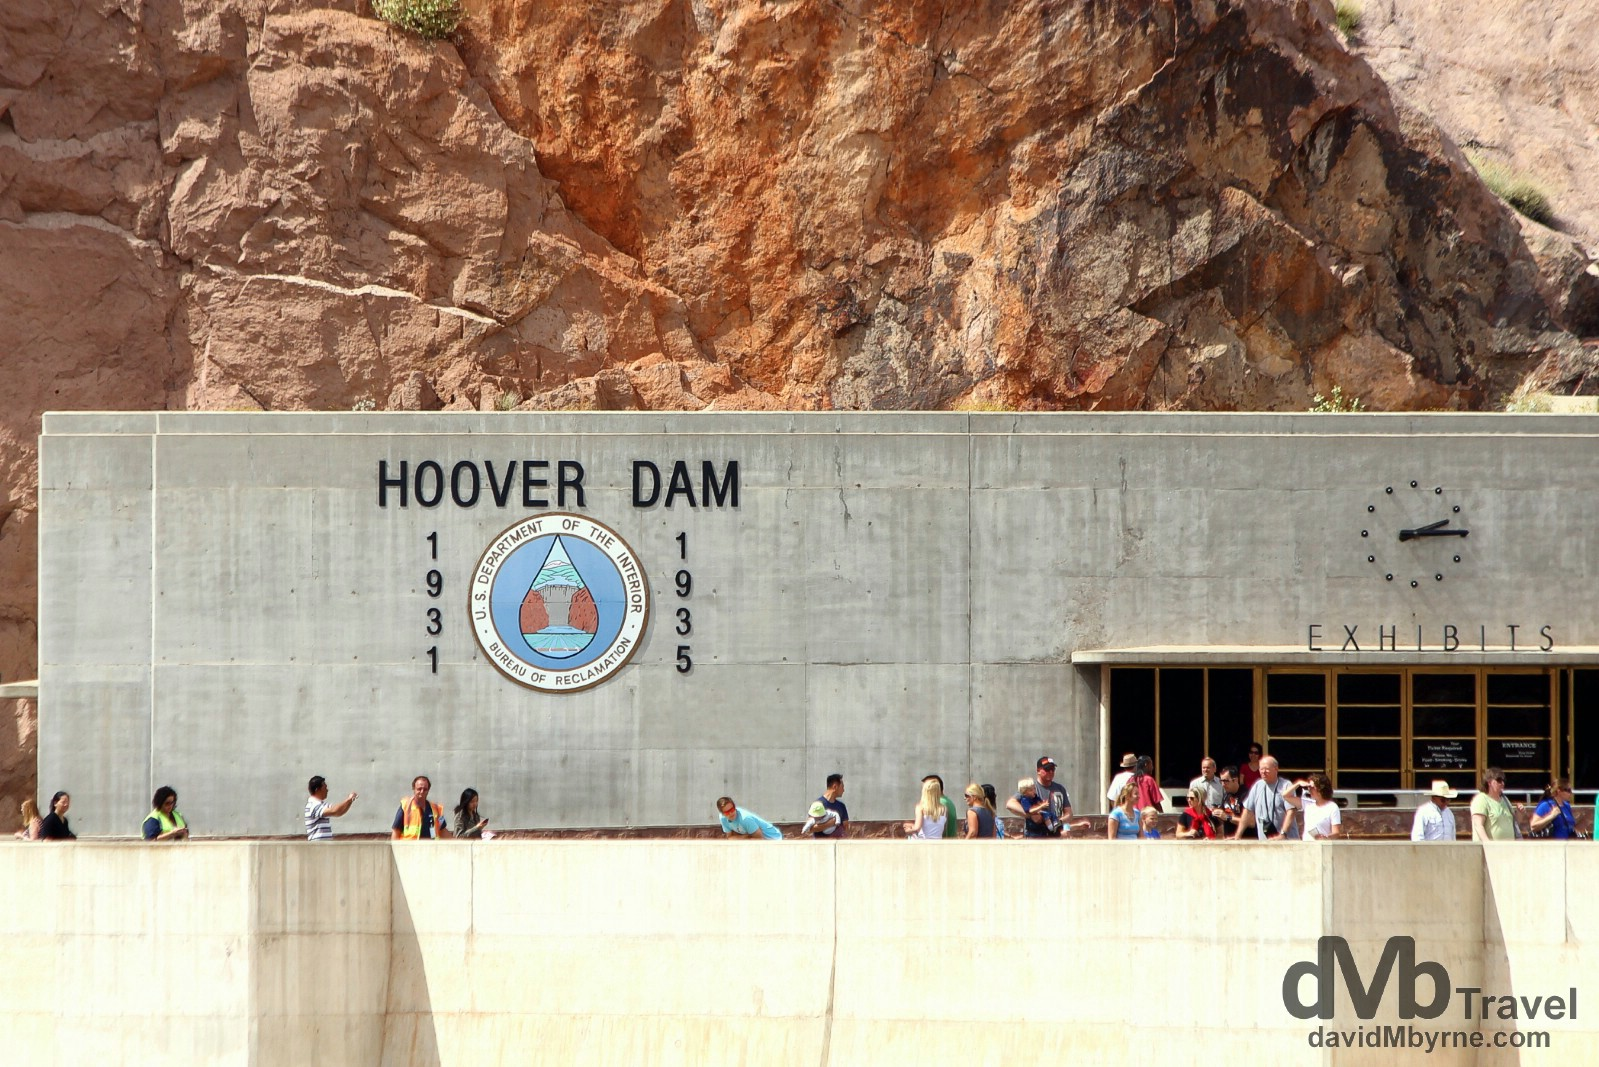 Hoover Dam, Nevada/Arizona, USA